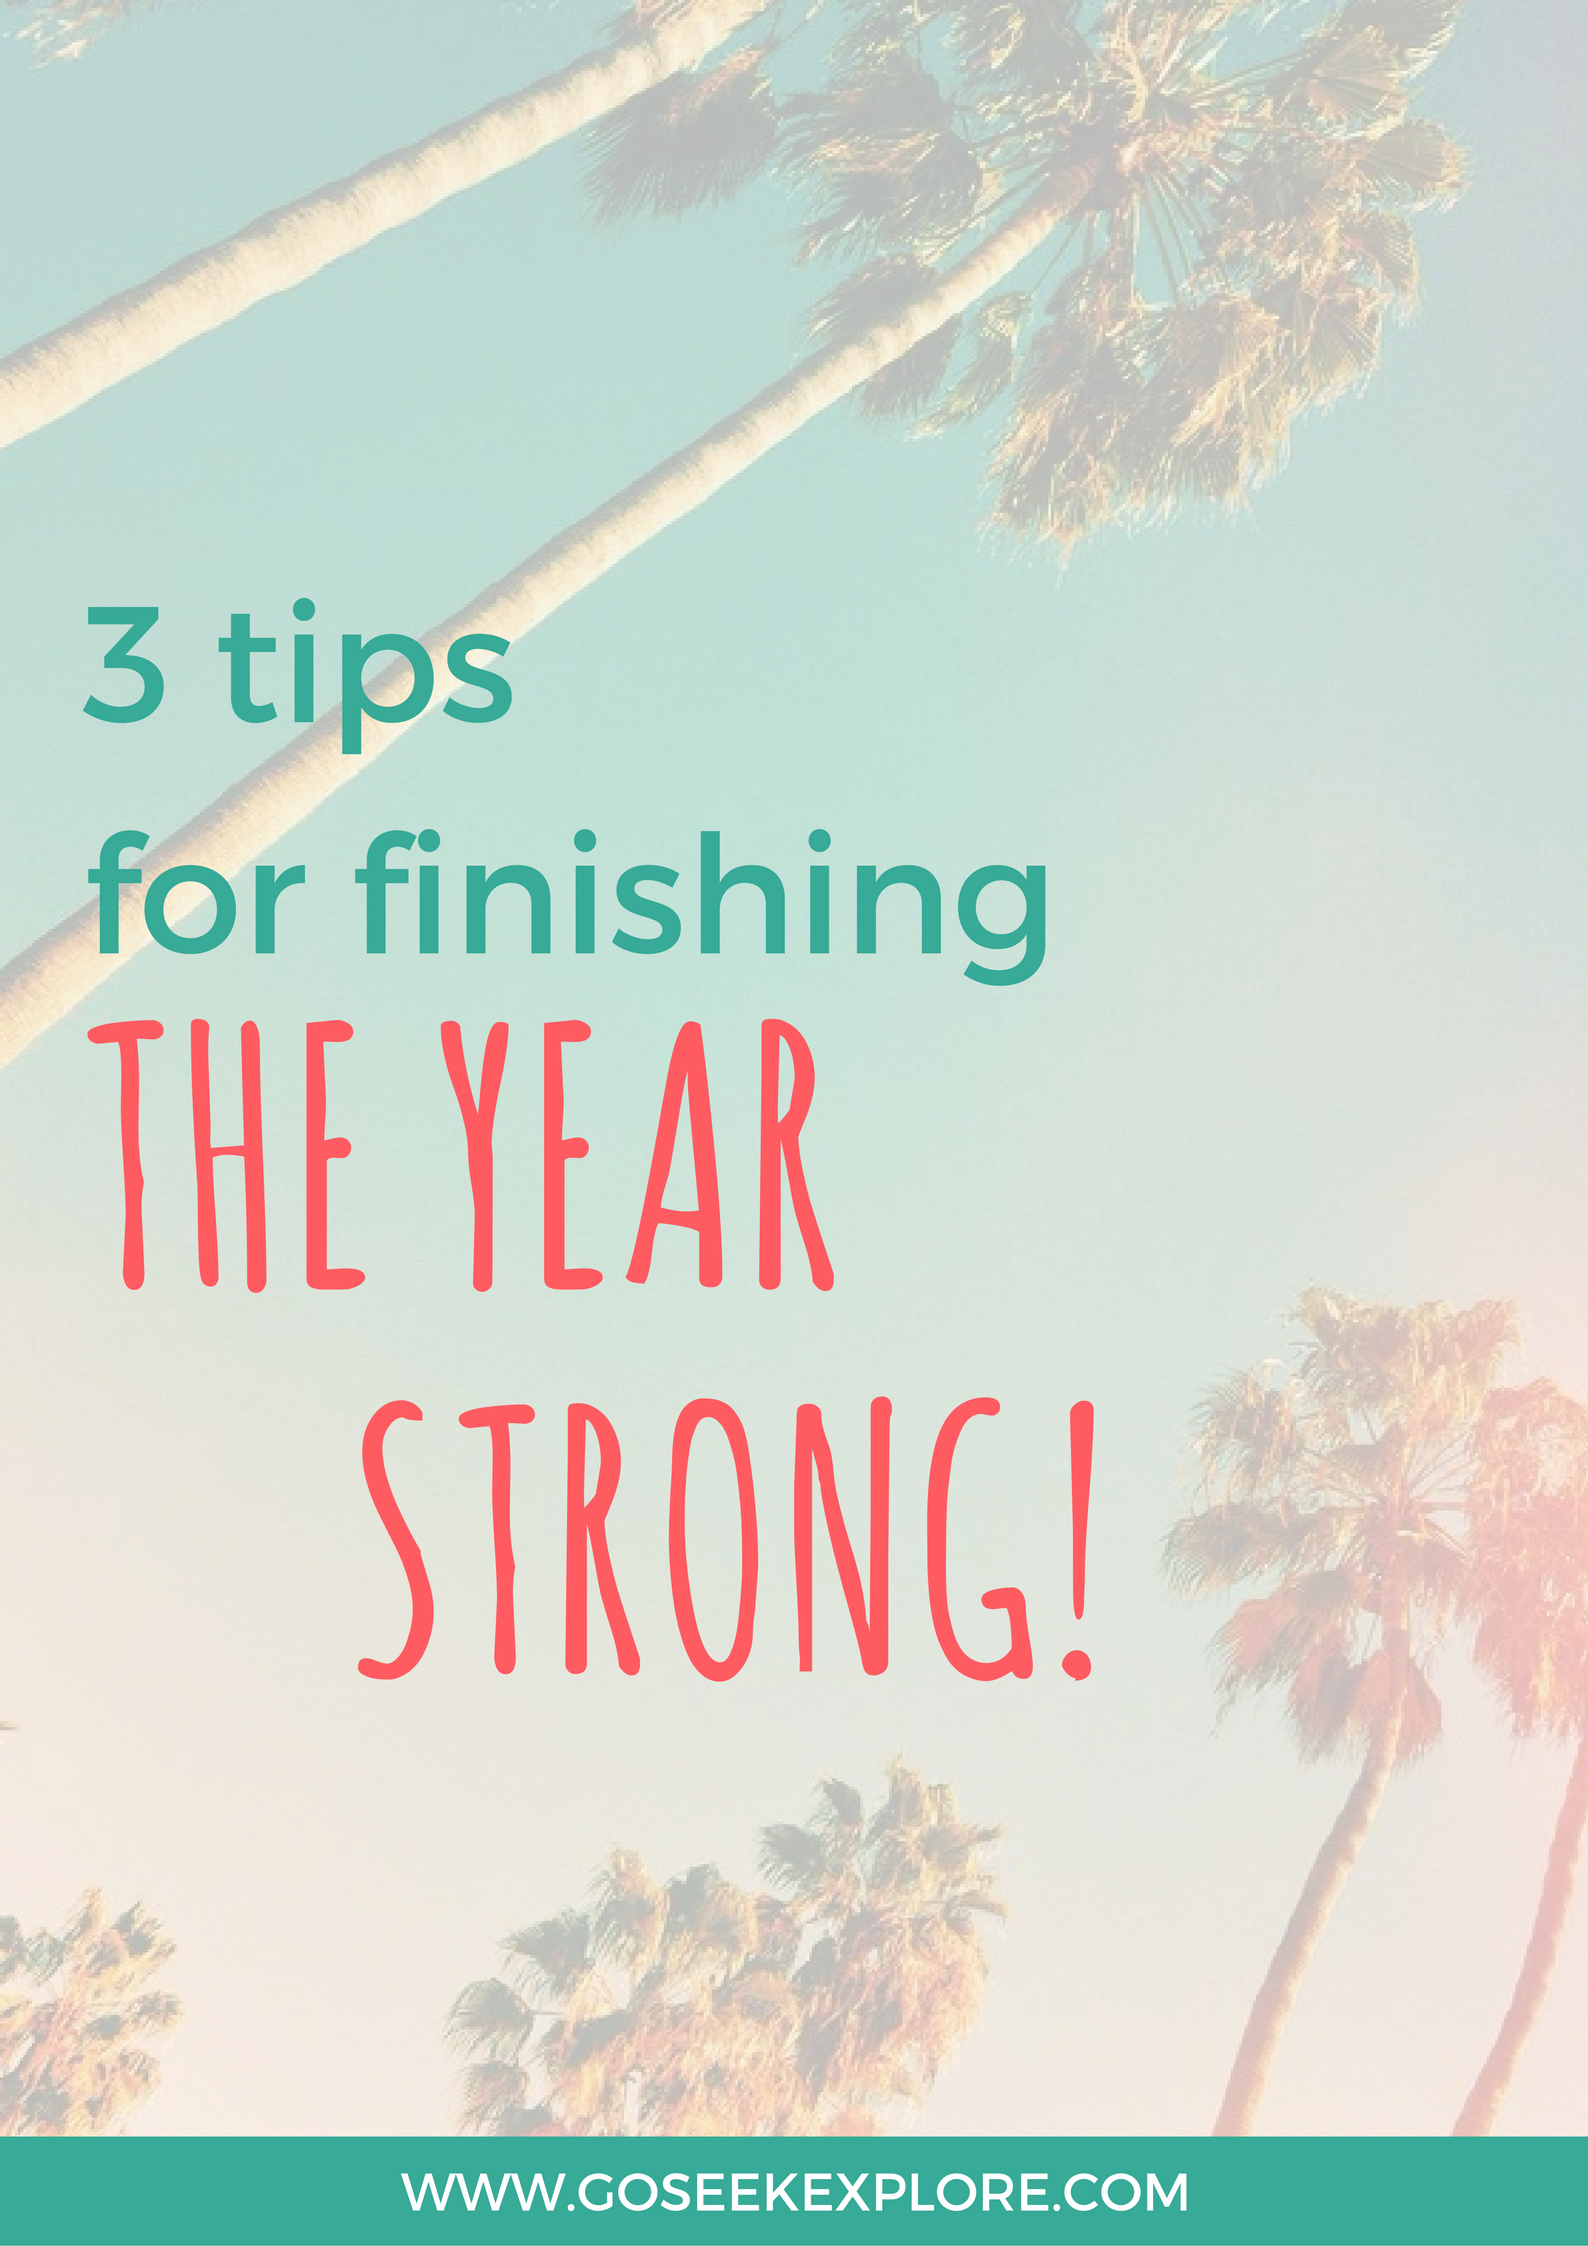 3 Tips for finishing the year strong! Quick, actionable ways to accomplish your new years goals!